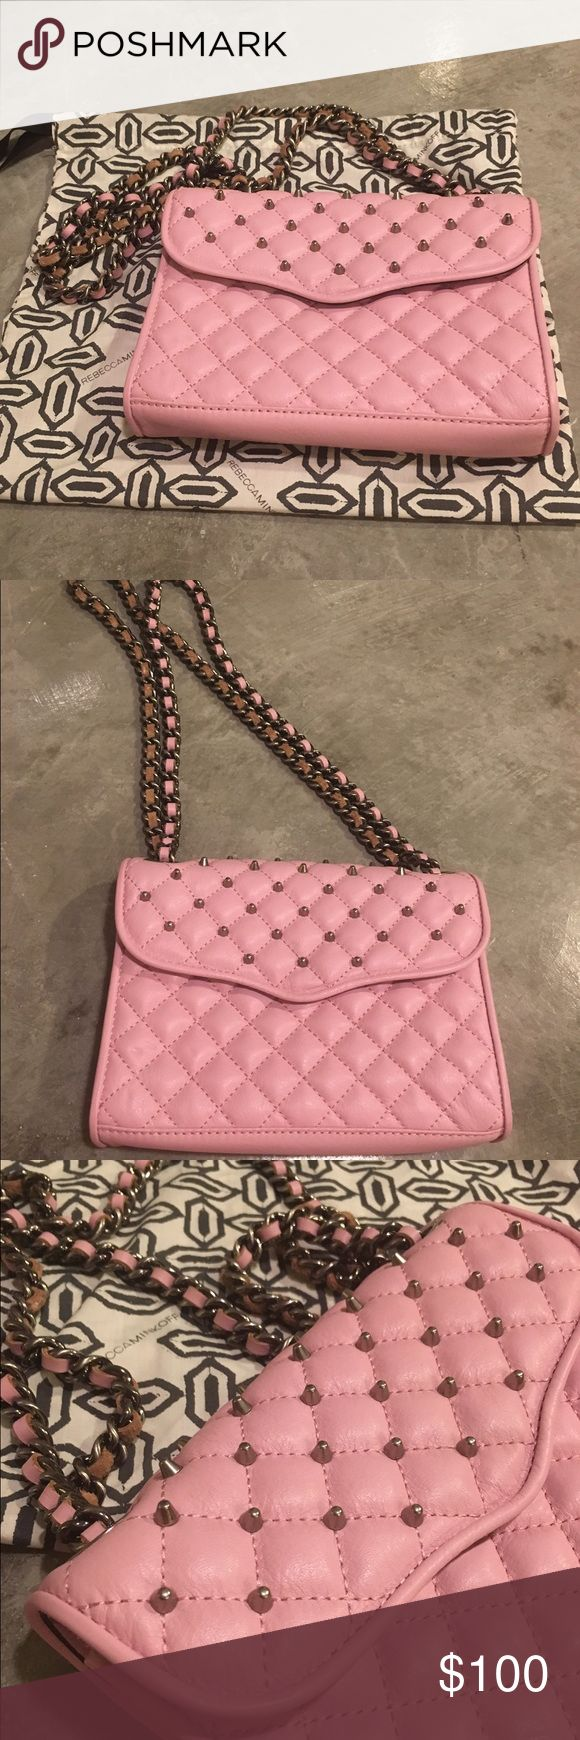 Rebecca Minkoff Quilted pink purse 💗 Rebecca Minkoff Pink Quilted purse with chain strap and silver studs. Can be worn as a cross body or on your shoulder. Excellent condition - only used one time! Rebecca Minkoff Bags Crossbody Bags